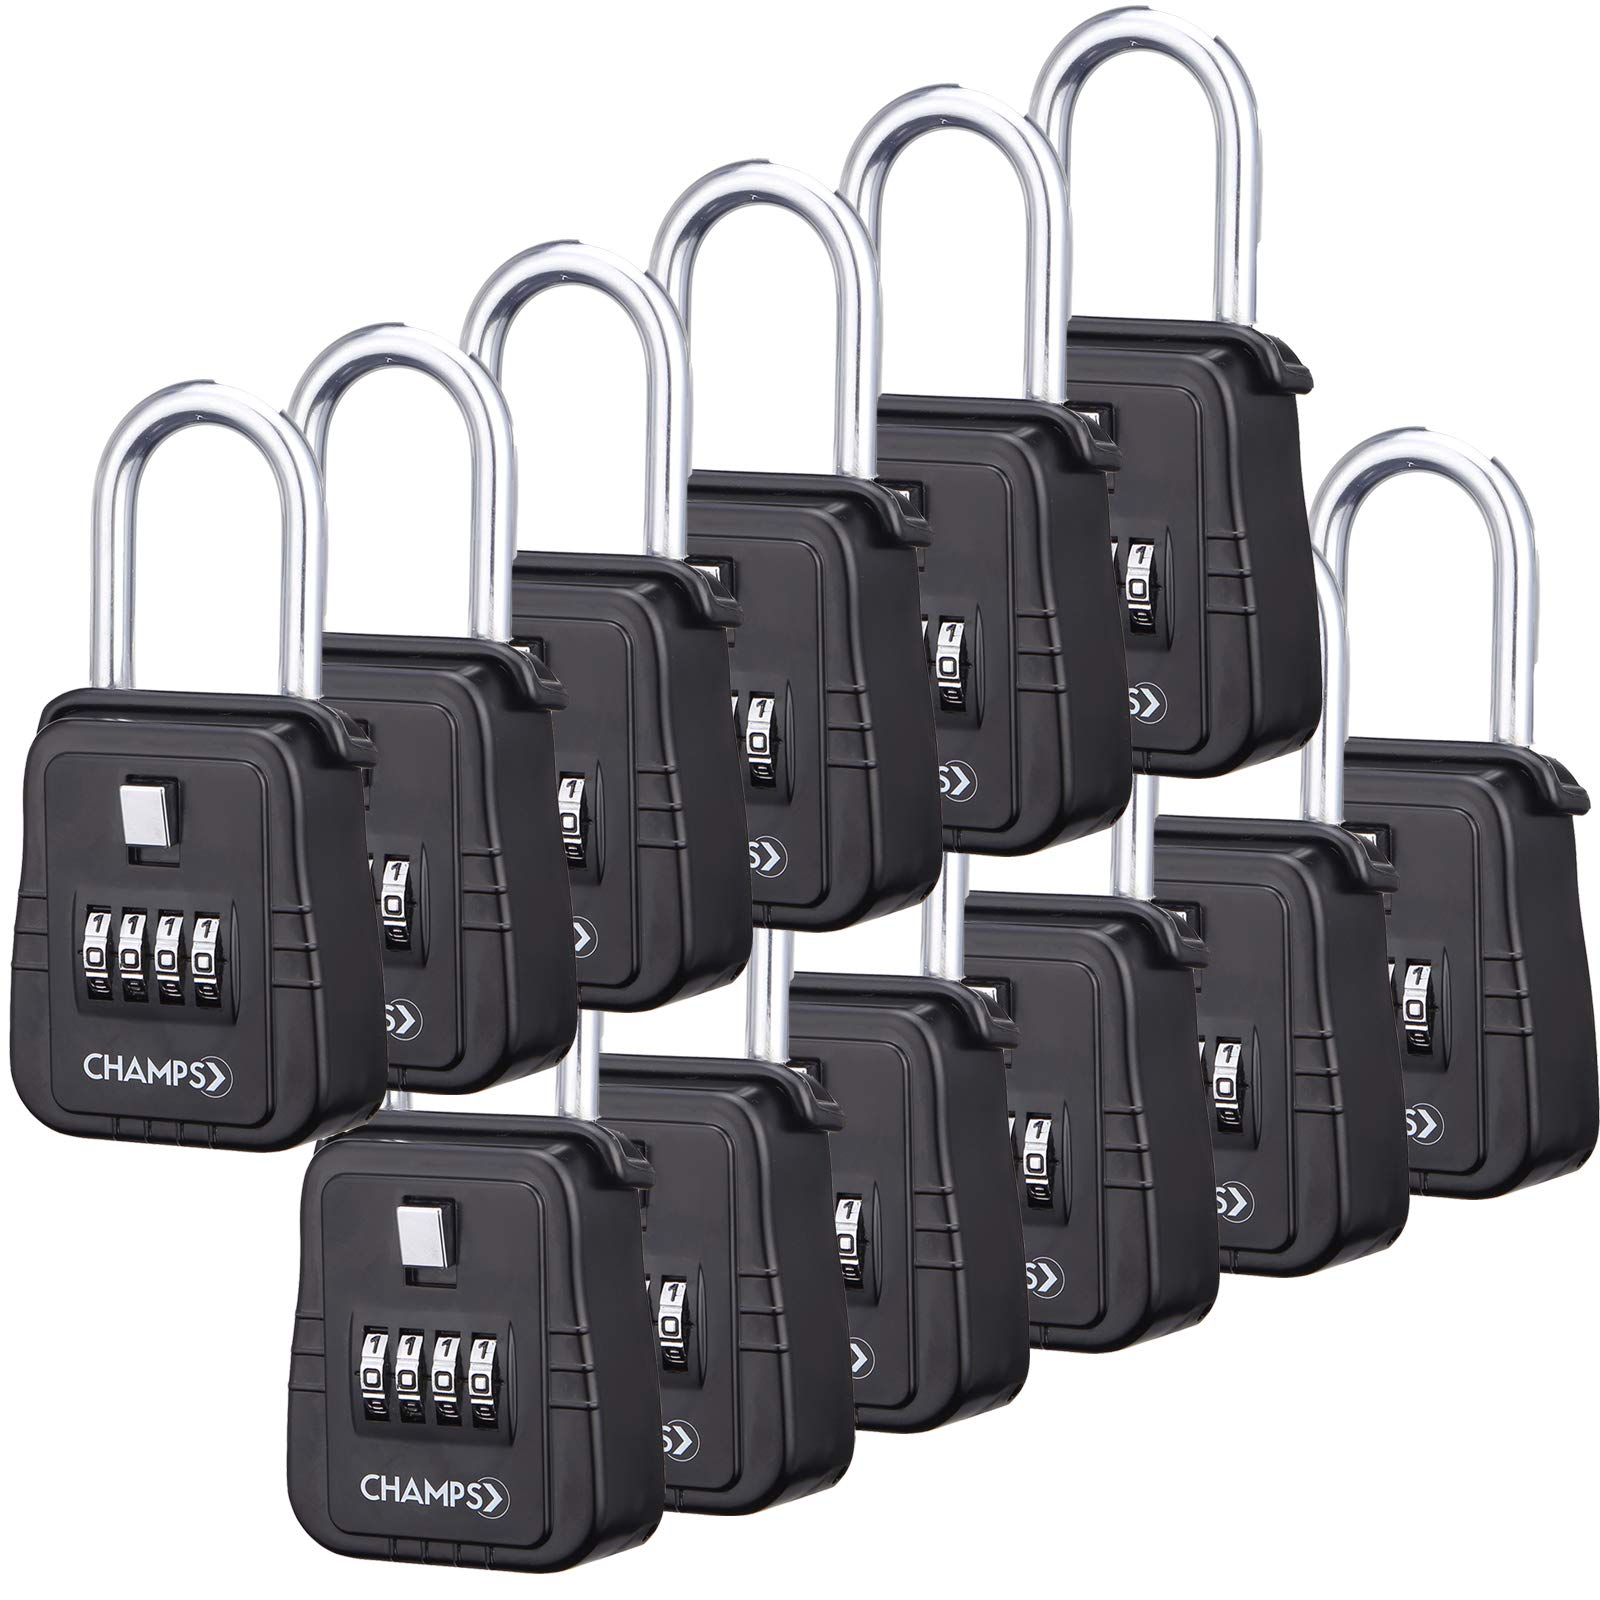 Champs Combination Realtor Lock, 4 Digit Comination Padlock, Real Estate Key Lock Box, Set-Your-Own Combination [12 Packs, Black] by Champs (Image #1)